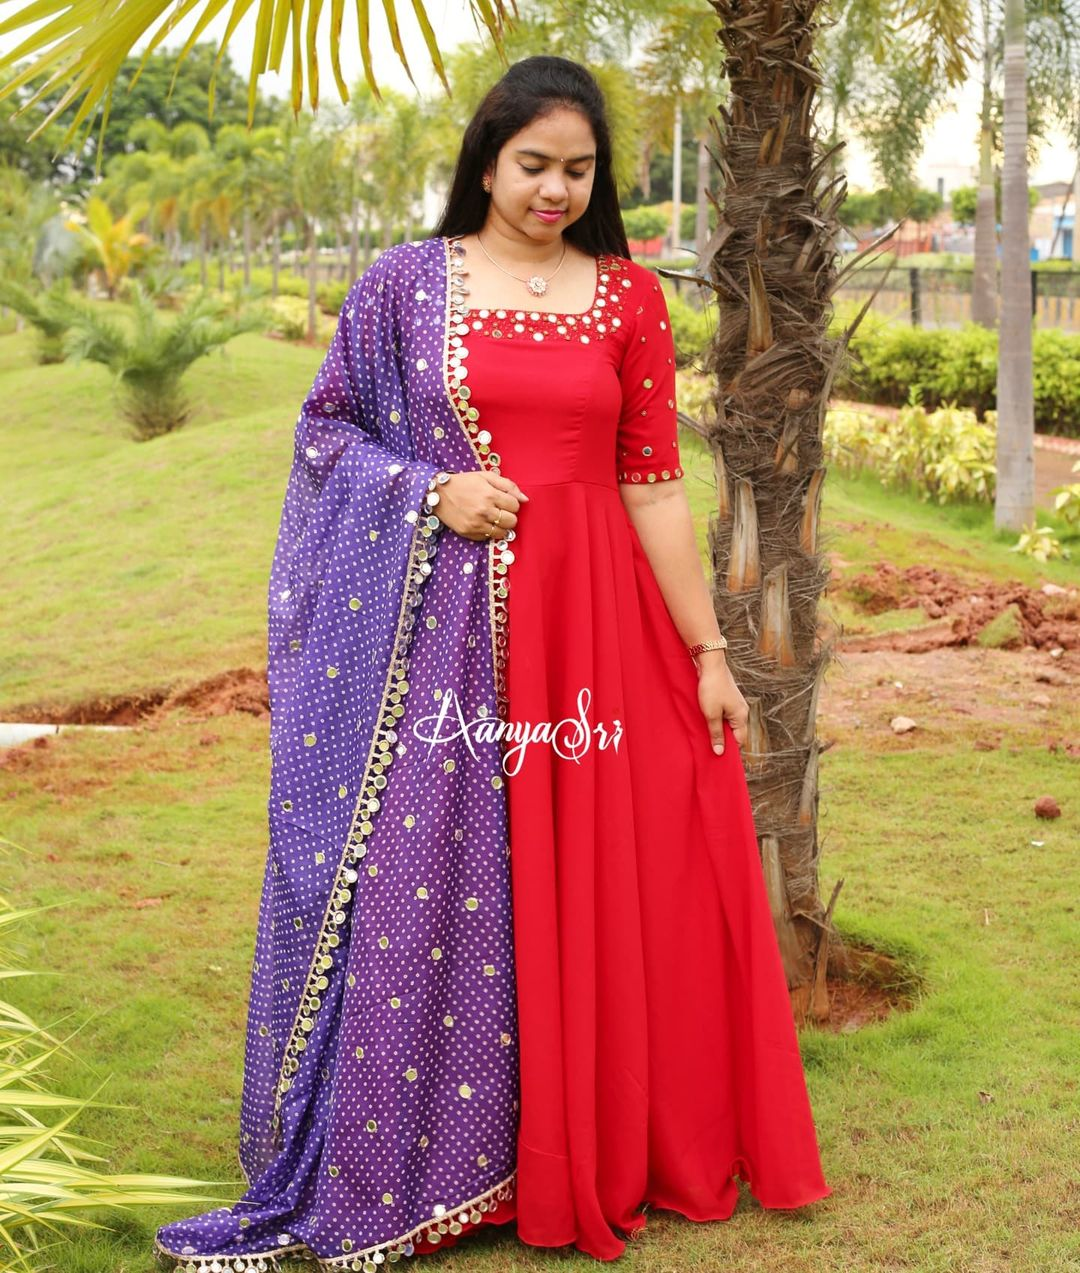 Red long frock with intricate real mirrors work on the yoke and sleeves paired with an elegant mirror worked green colored bhandini dupatta. 2021-09-08